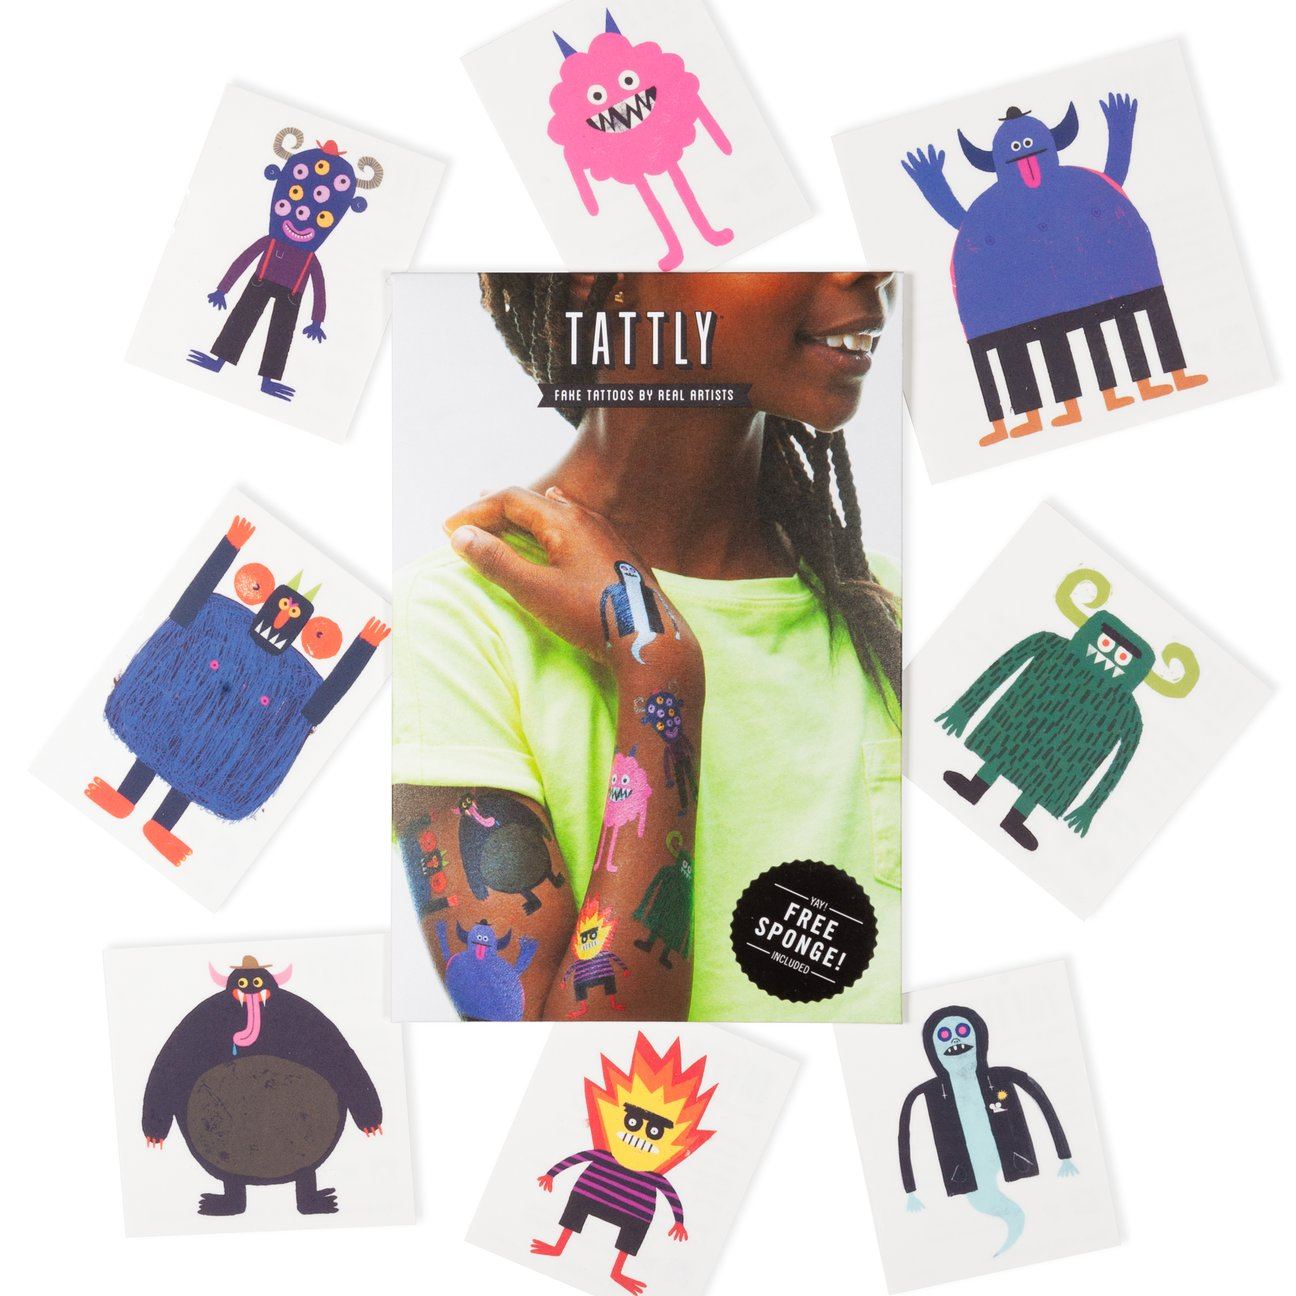 Non-candy Halloween treats like Tattly's Halloween tattoos make Halloween more inclusive